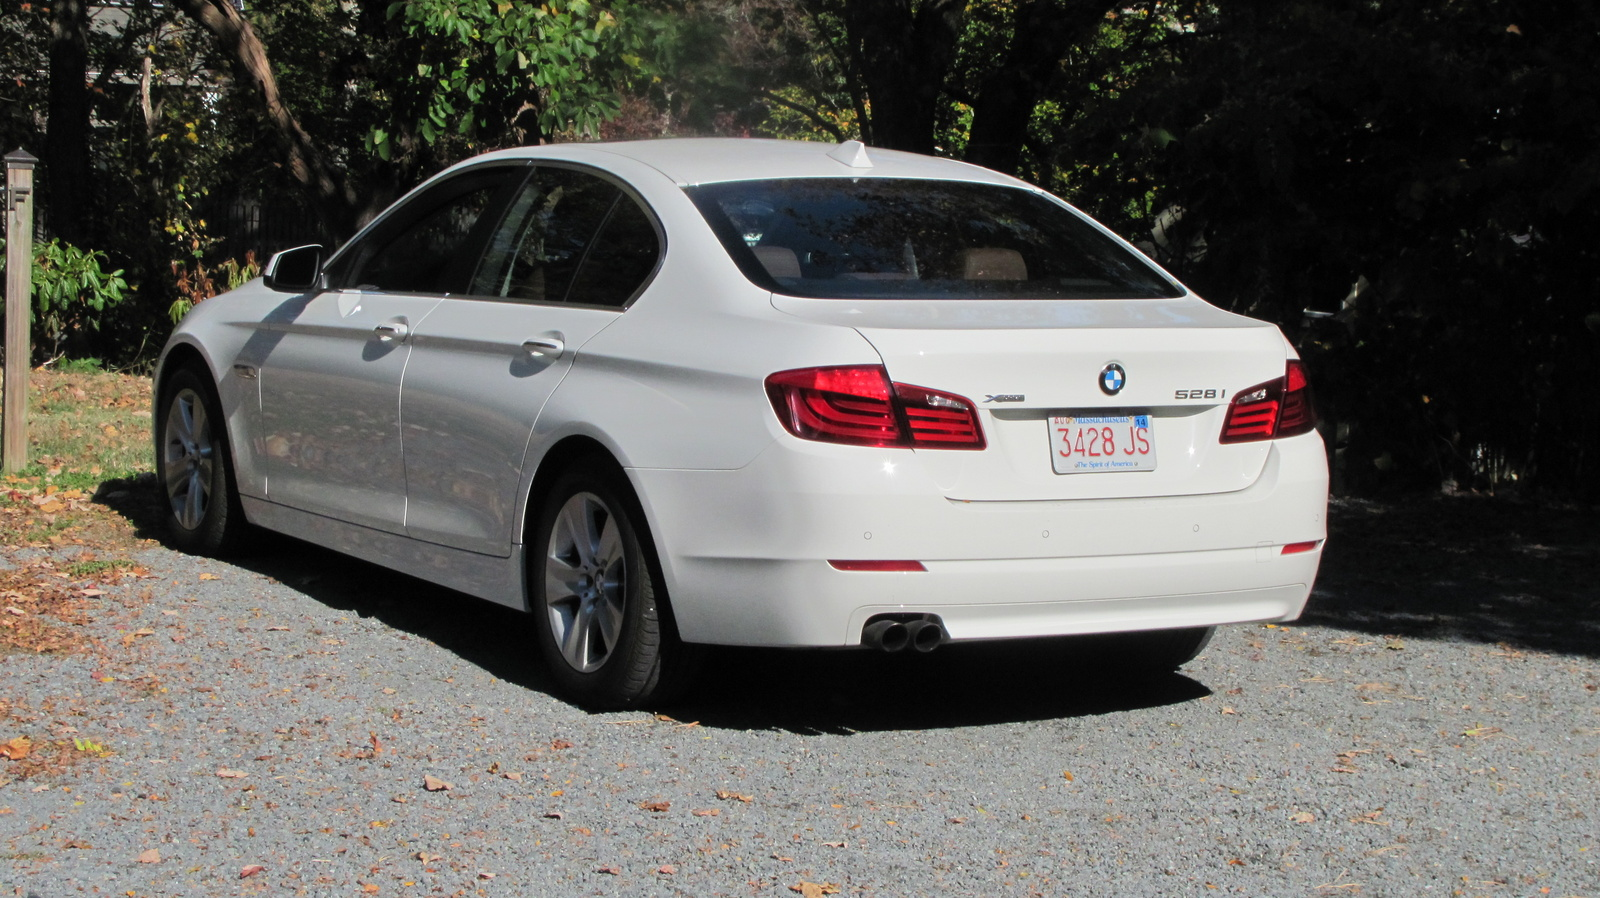 BMW 5 series 528i 2013 photo - 12